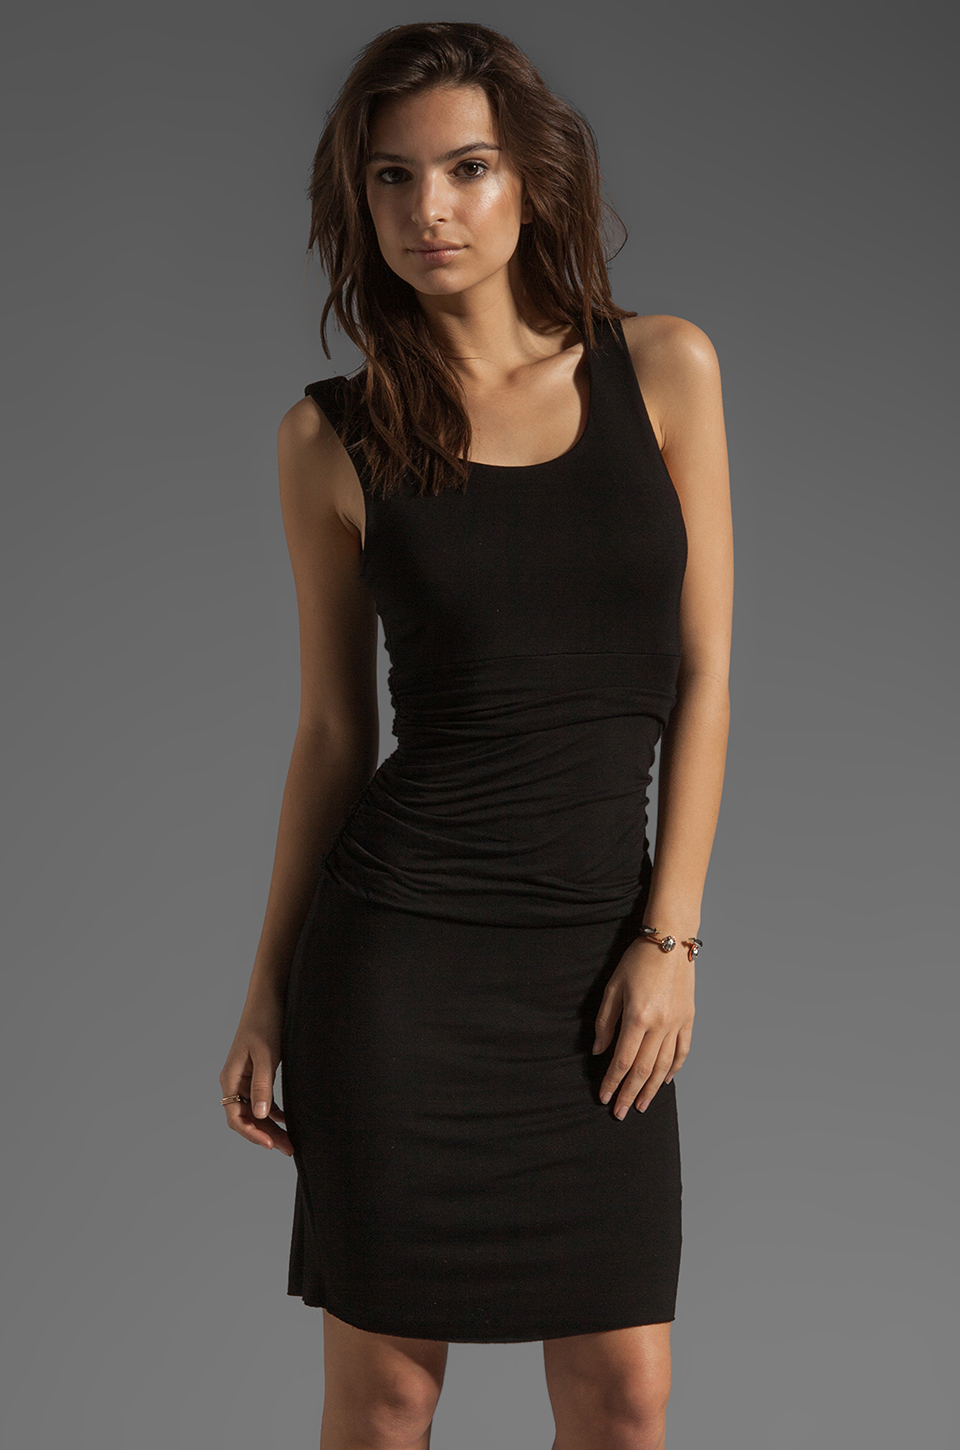 Bobi Tank Dress in Black